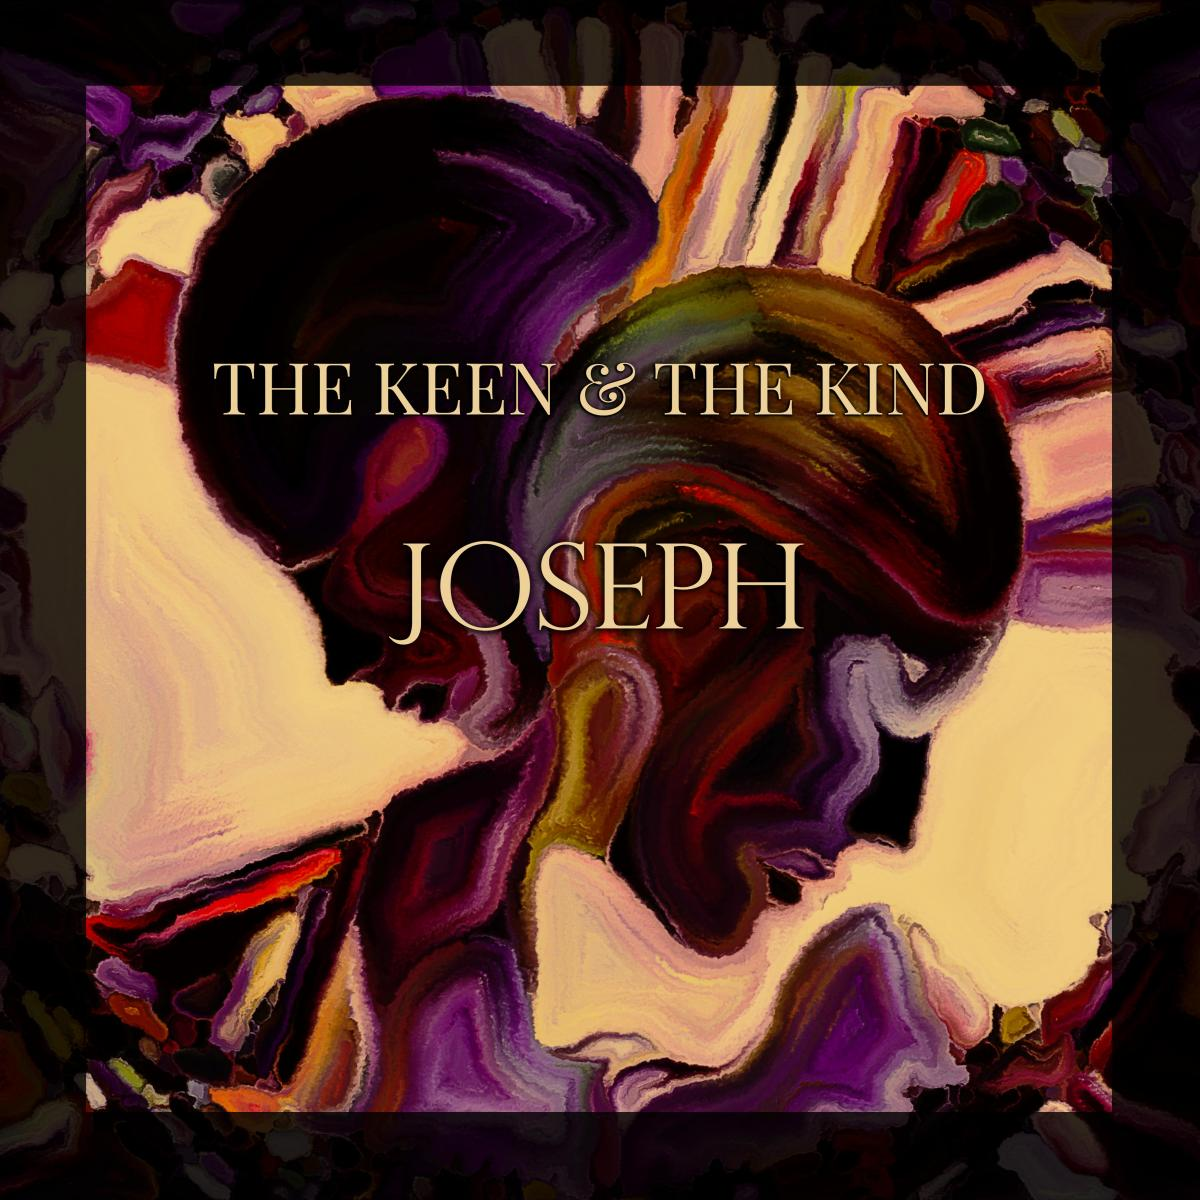 Joseph The Keen and the Kind